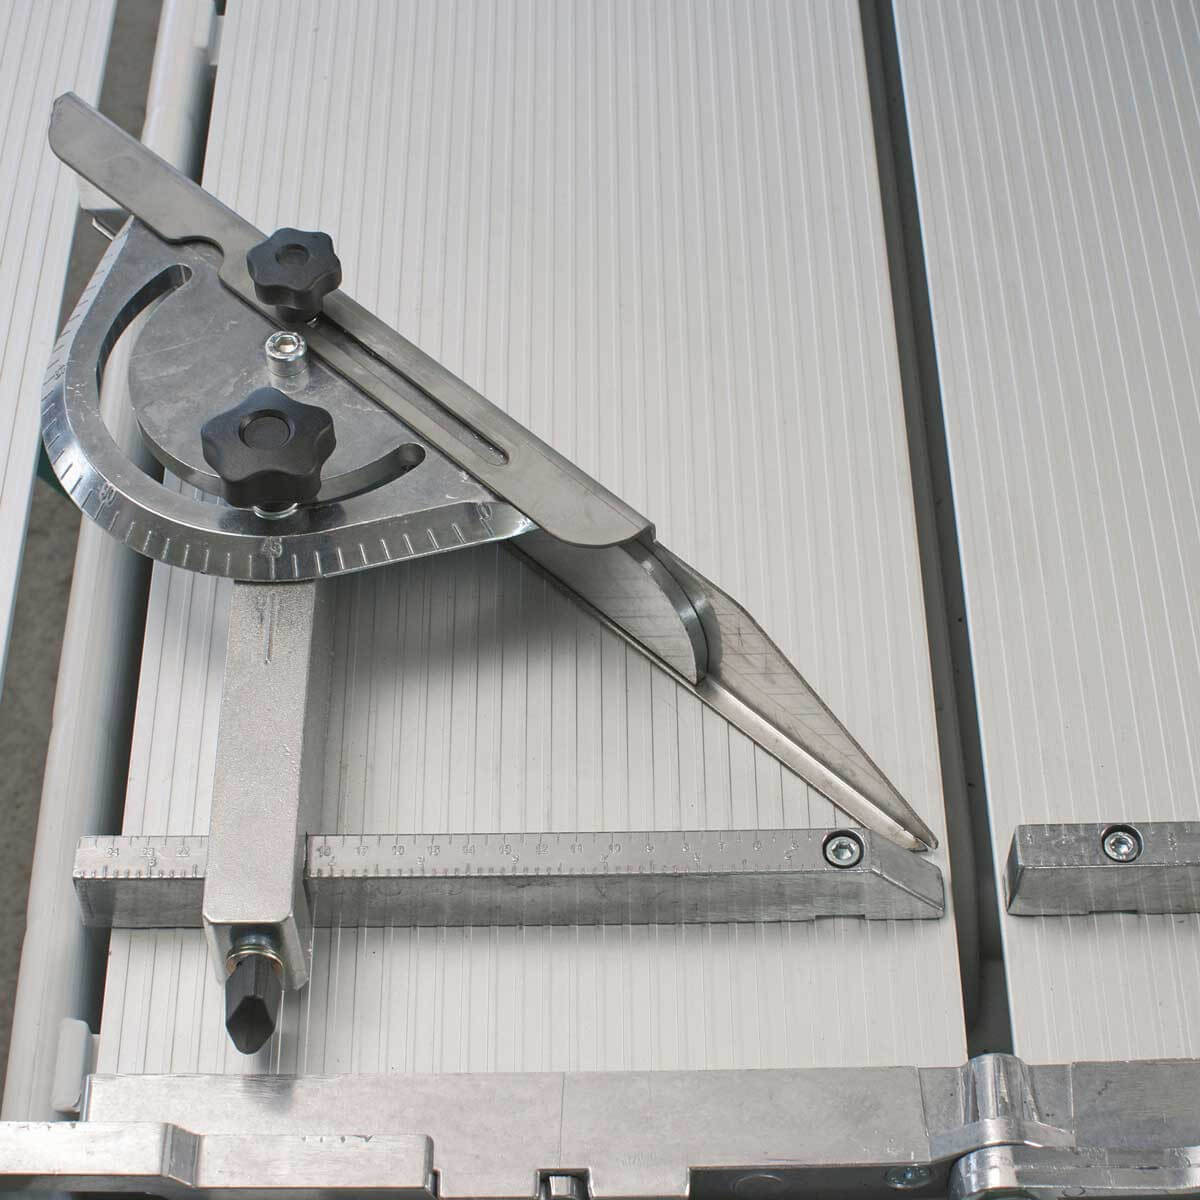 Imer rail saw protractor guide